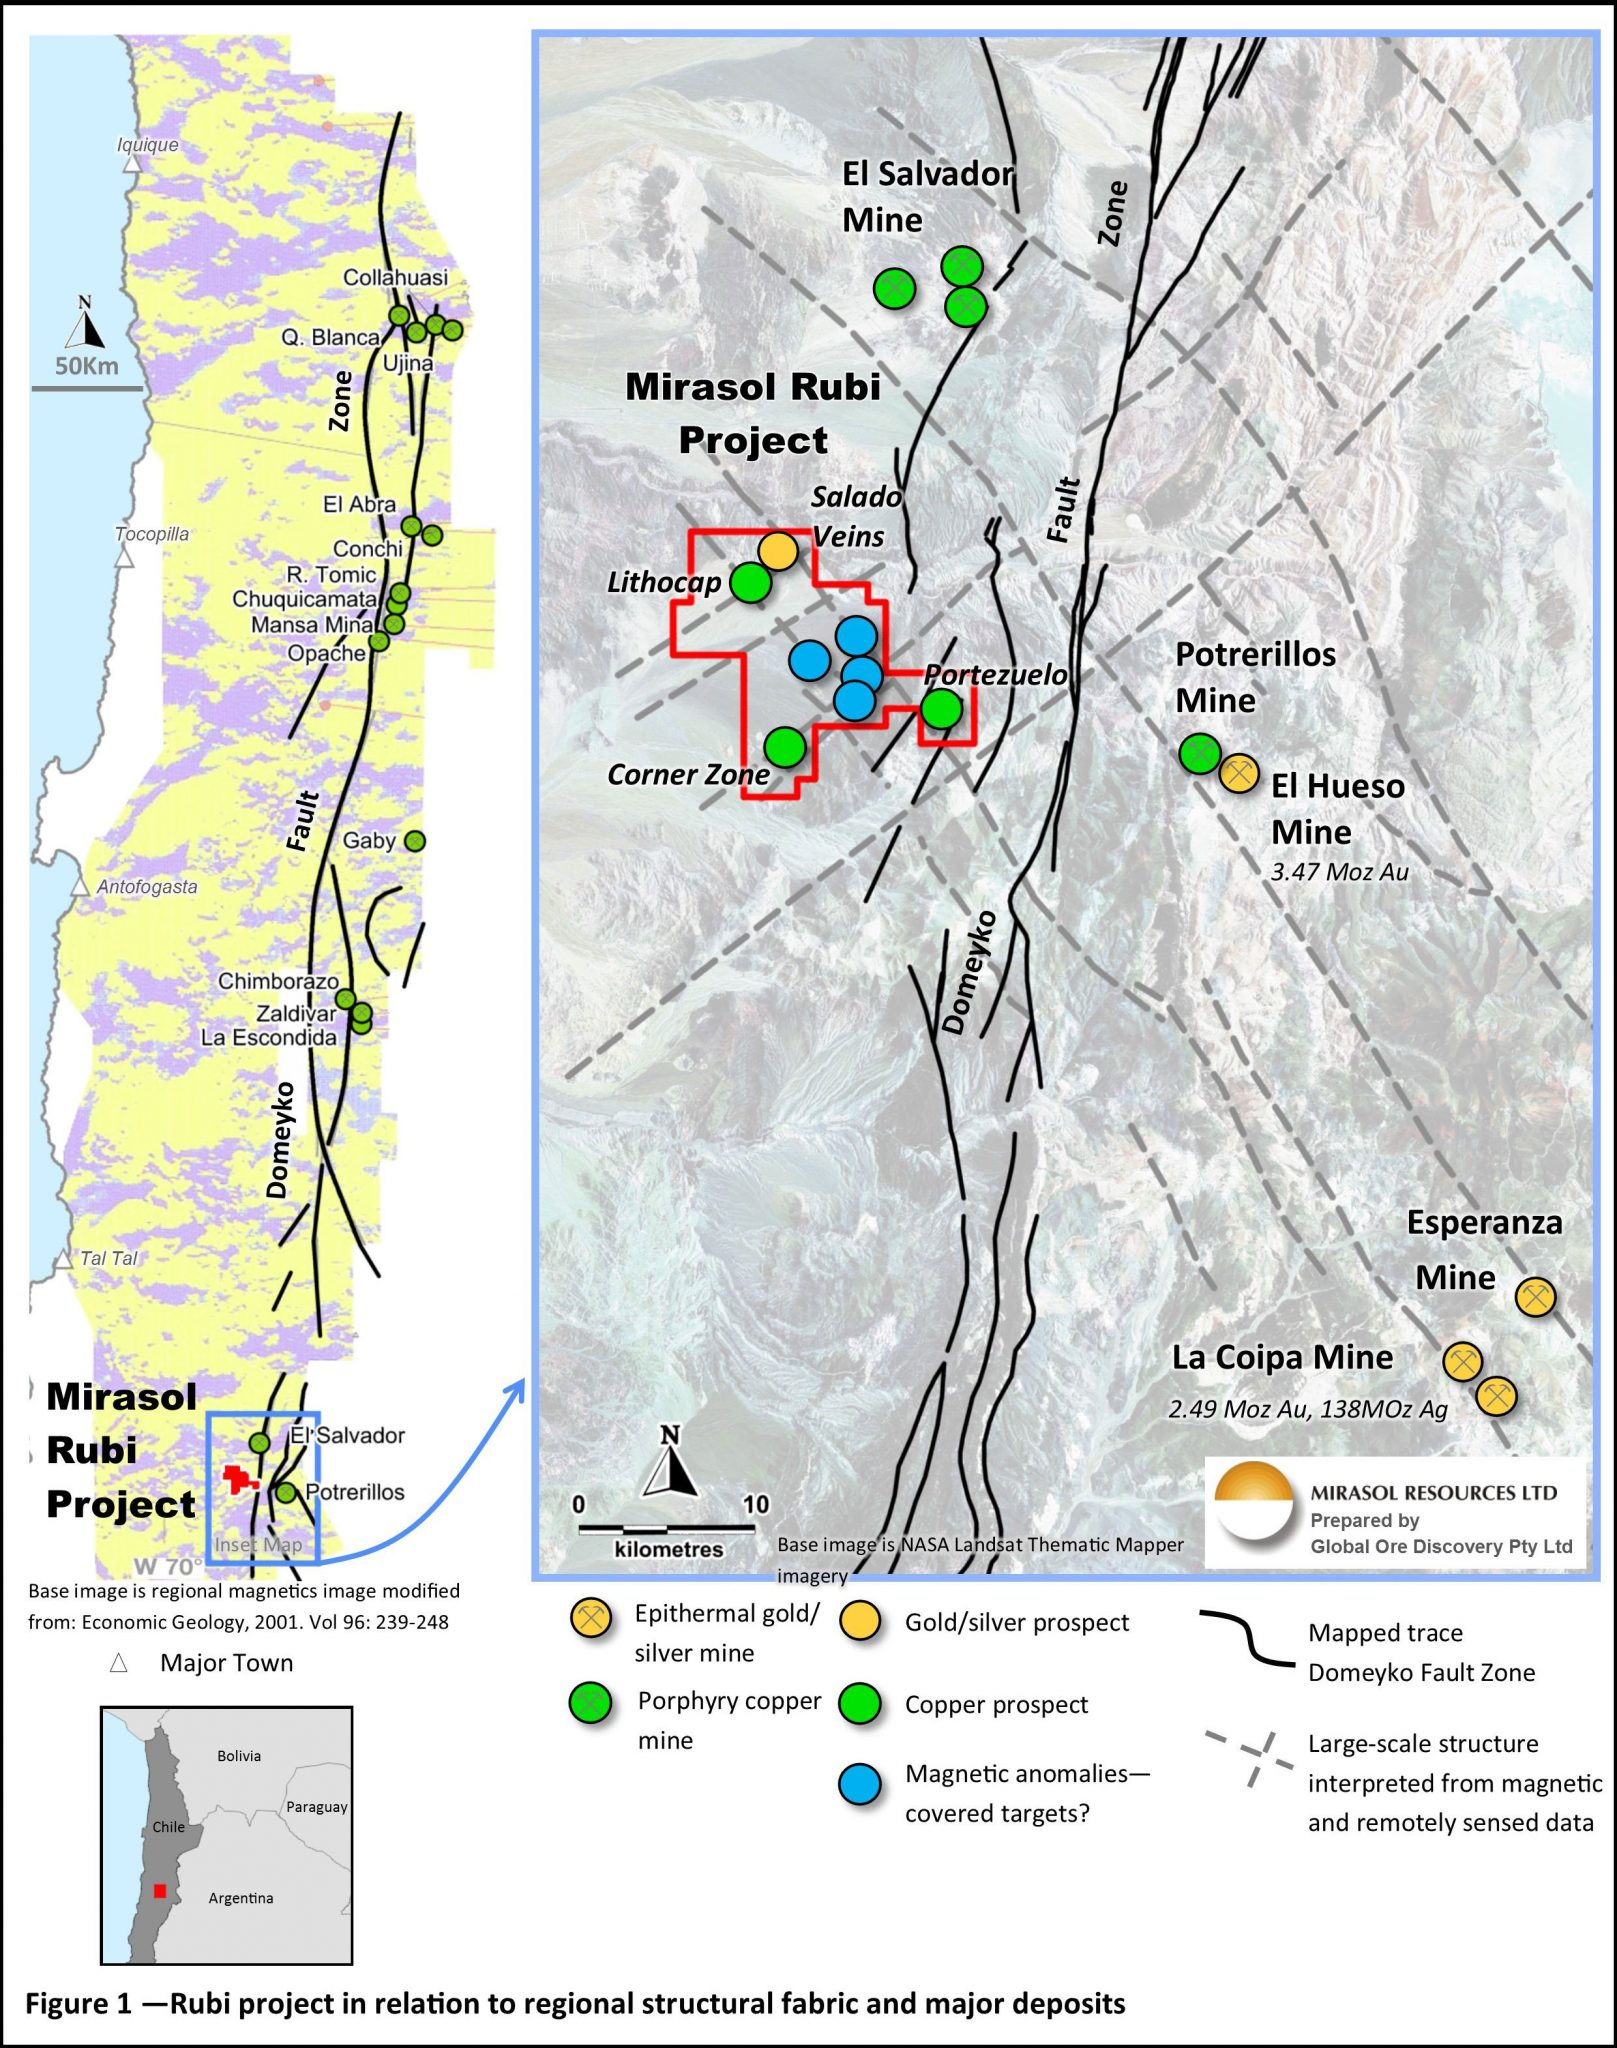 Figure 1 – Rubi project in relation to regional structural fabric and major deposits